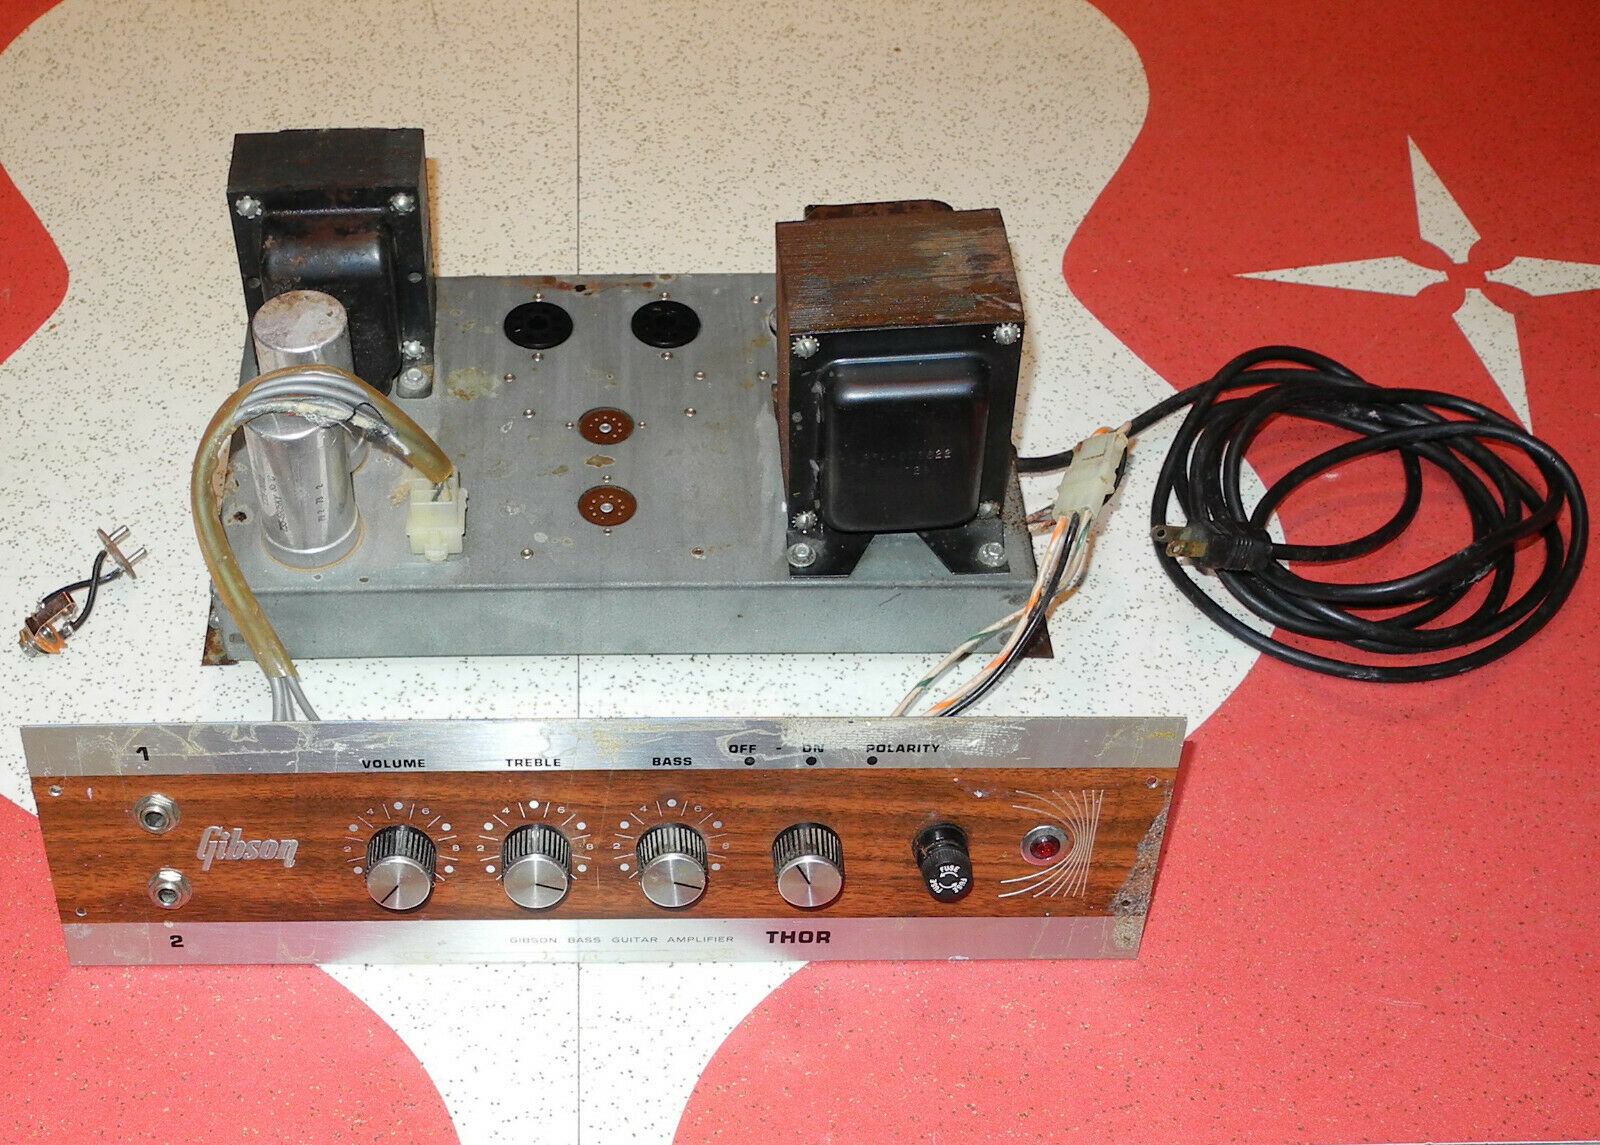 Vintage Gibson Thor 50 Watt Tube Bass Guitar Amp Chassis Project  - $149.99